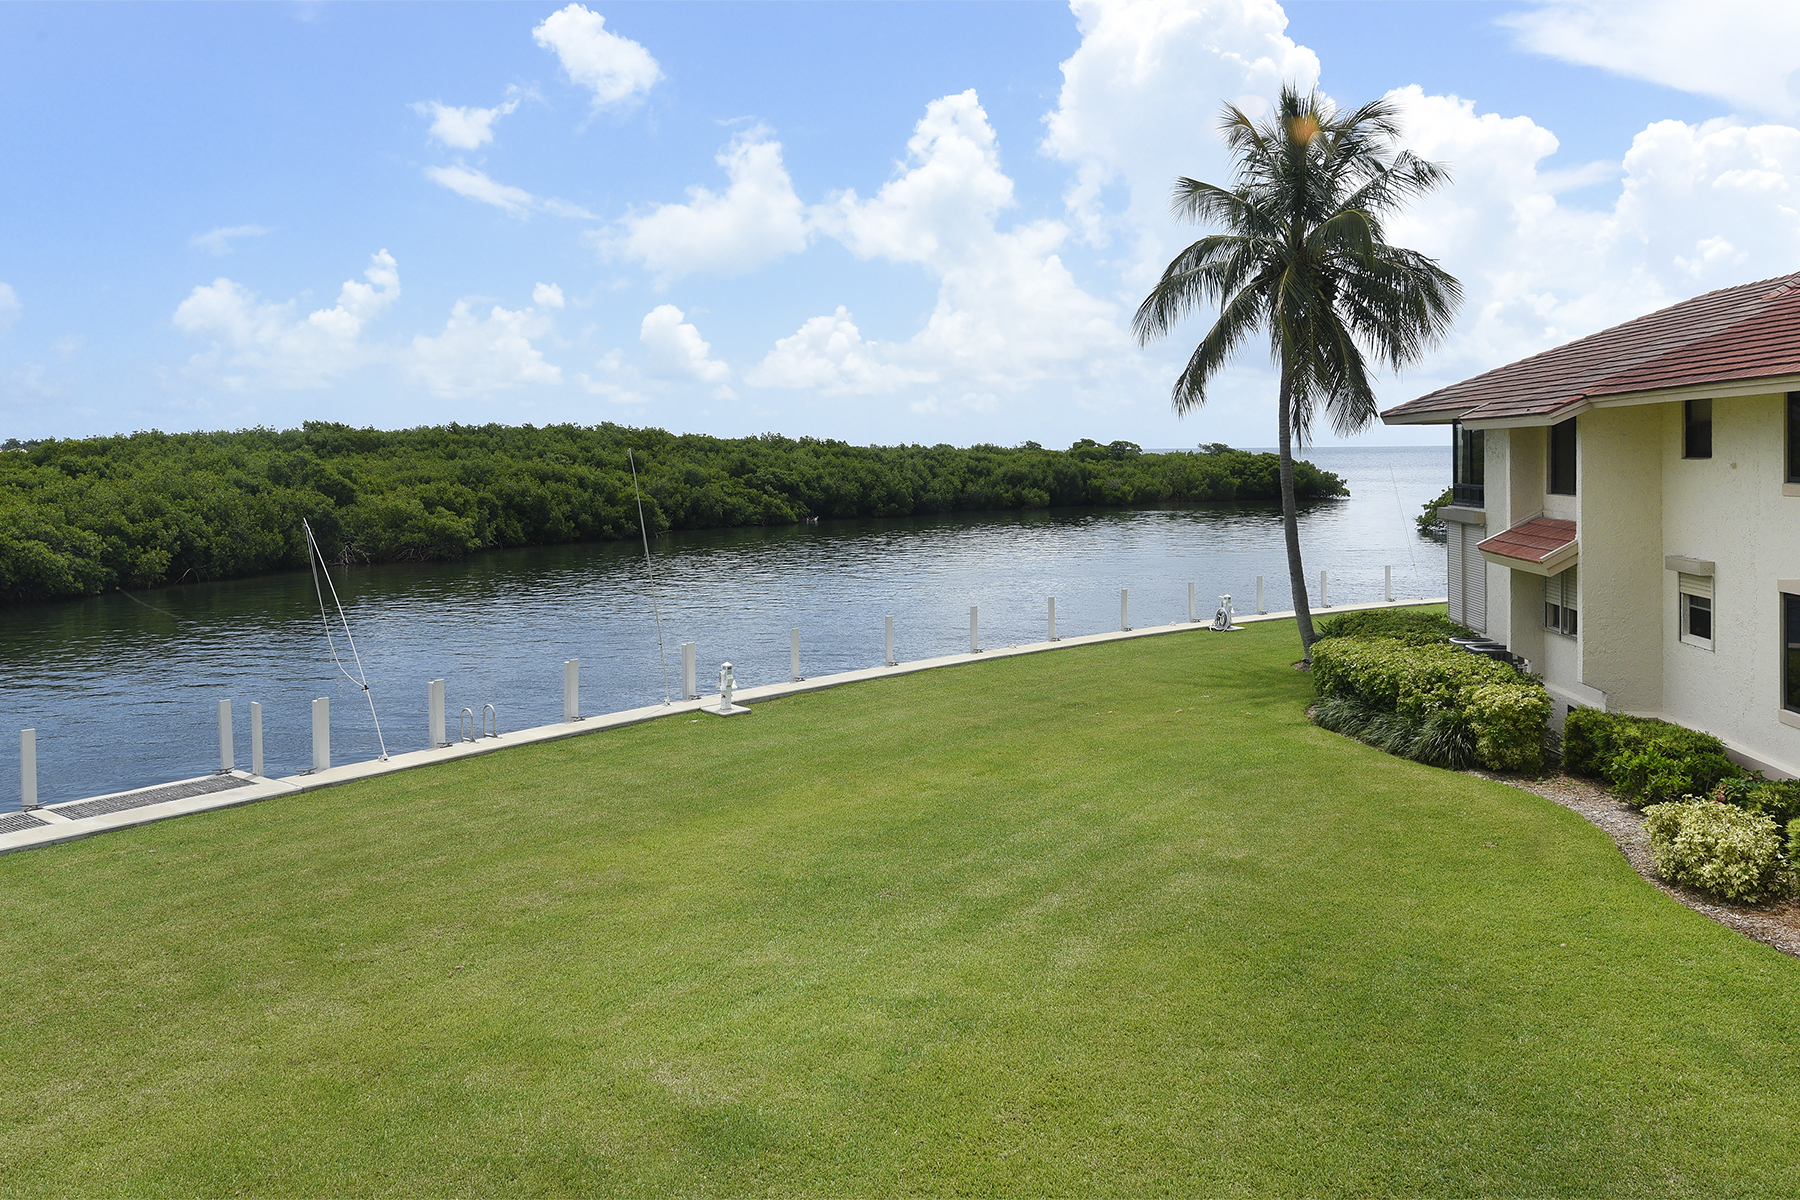 Additional photo for property listing at Beautiful Canalfront Condominium at Ocean Reef 55 Pumpkin Cay Road, Unit B Key Largo, Florida 33037 Hoa Kỳ